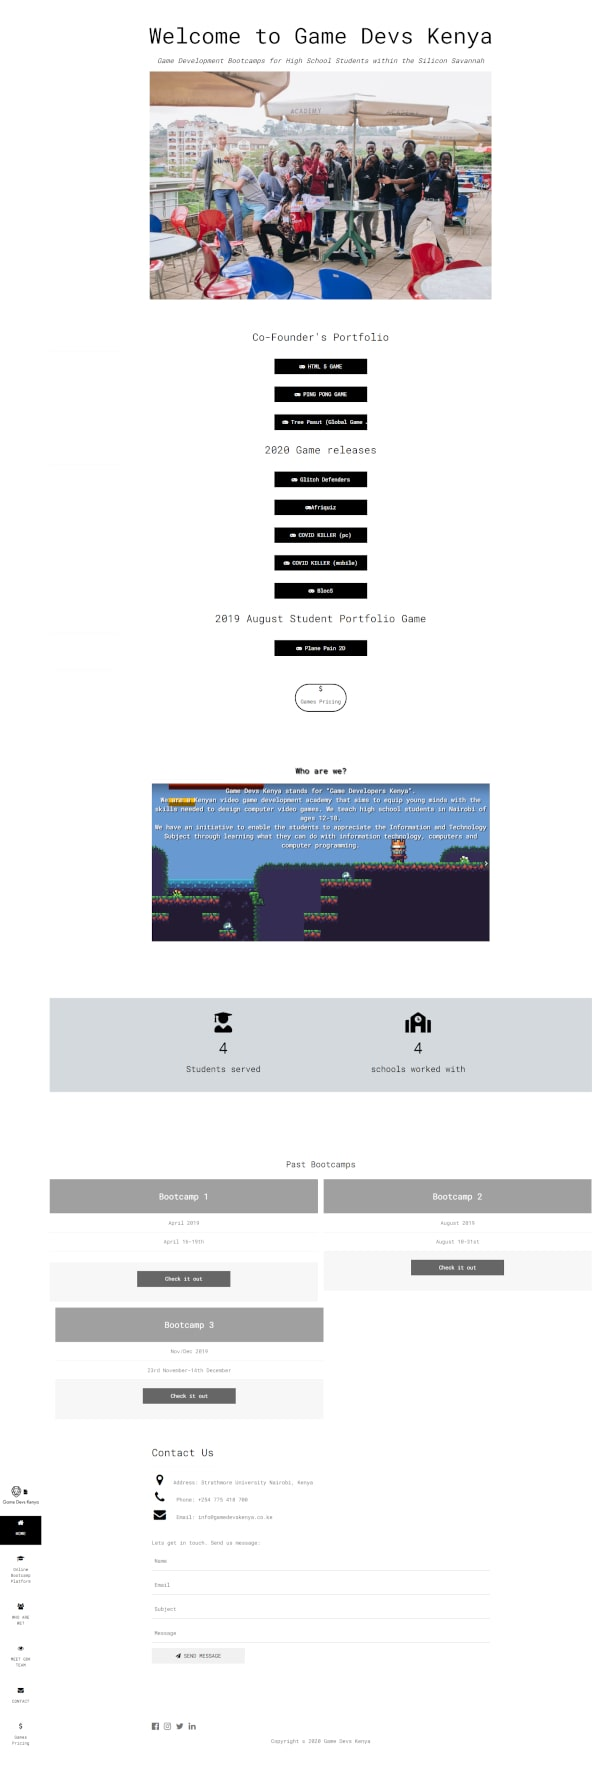 gamedevs kenya image full page screenshot view